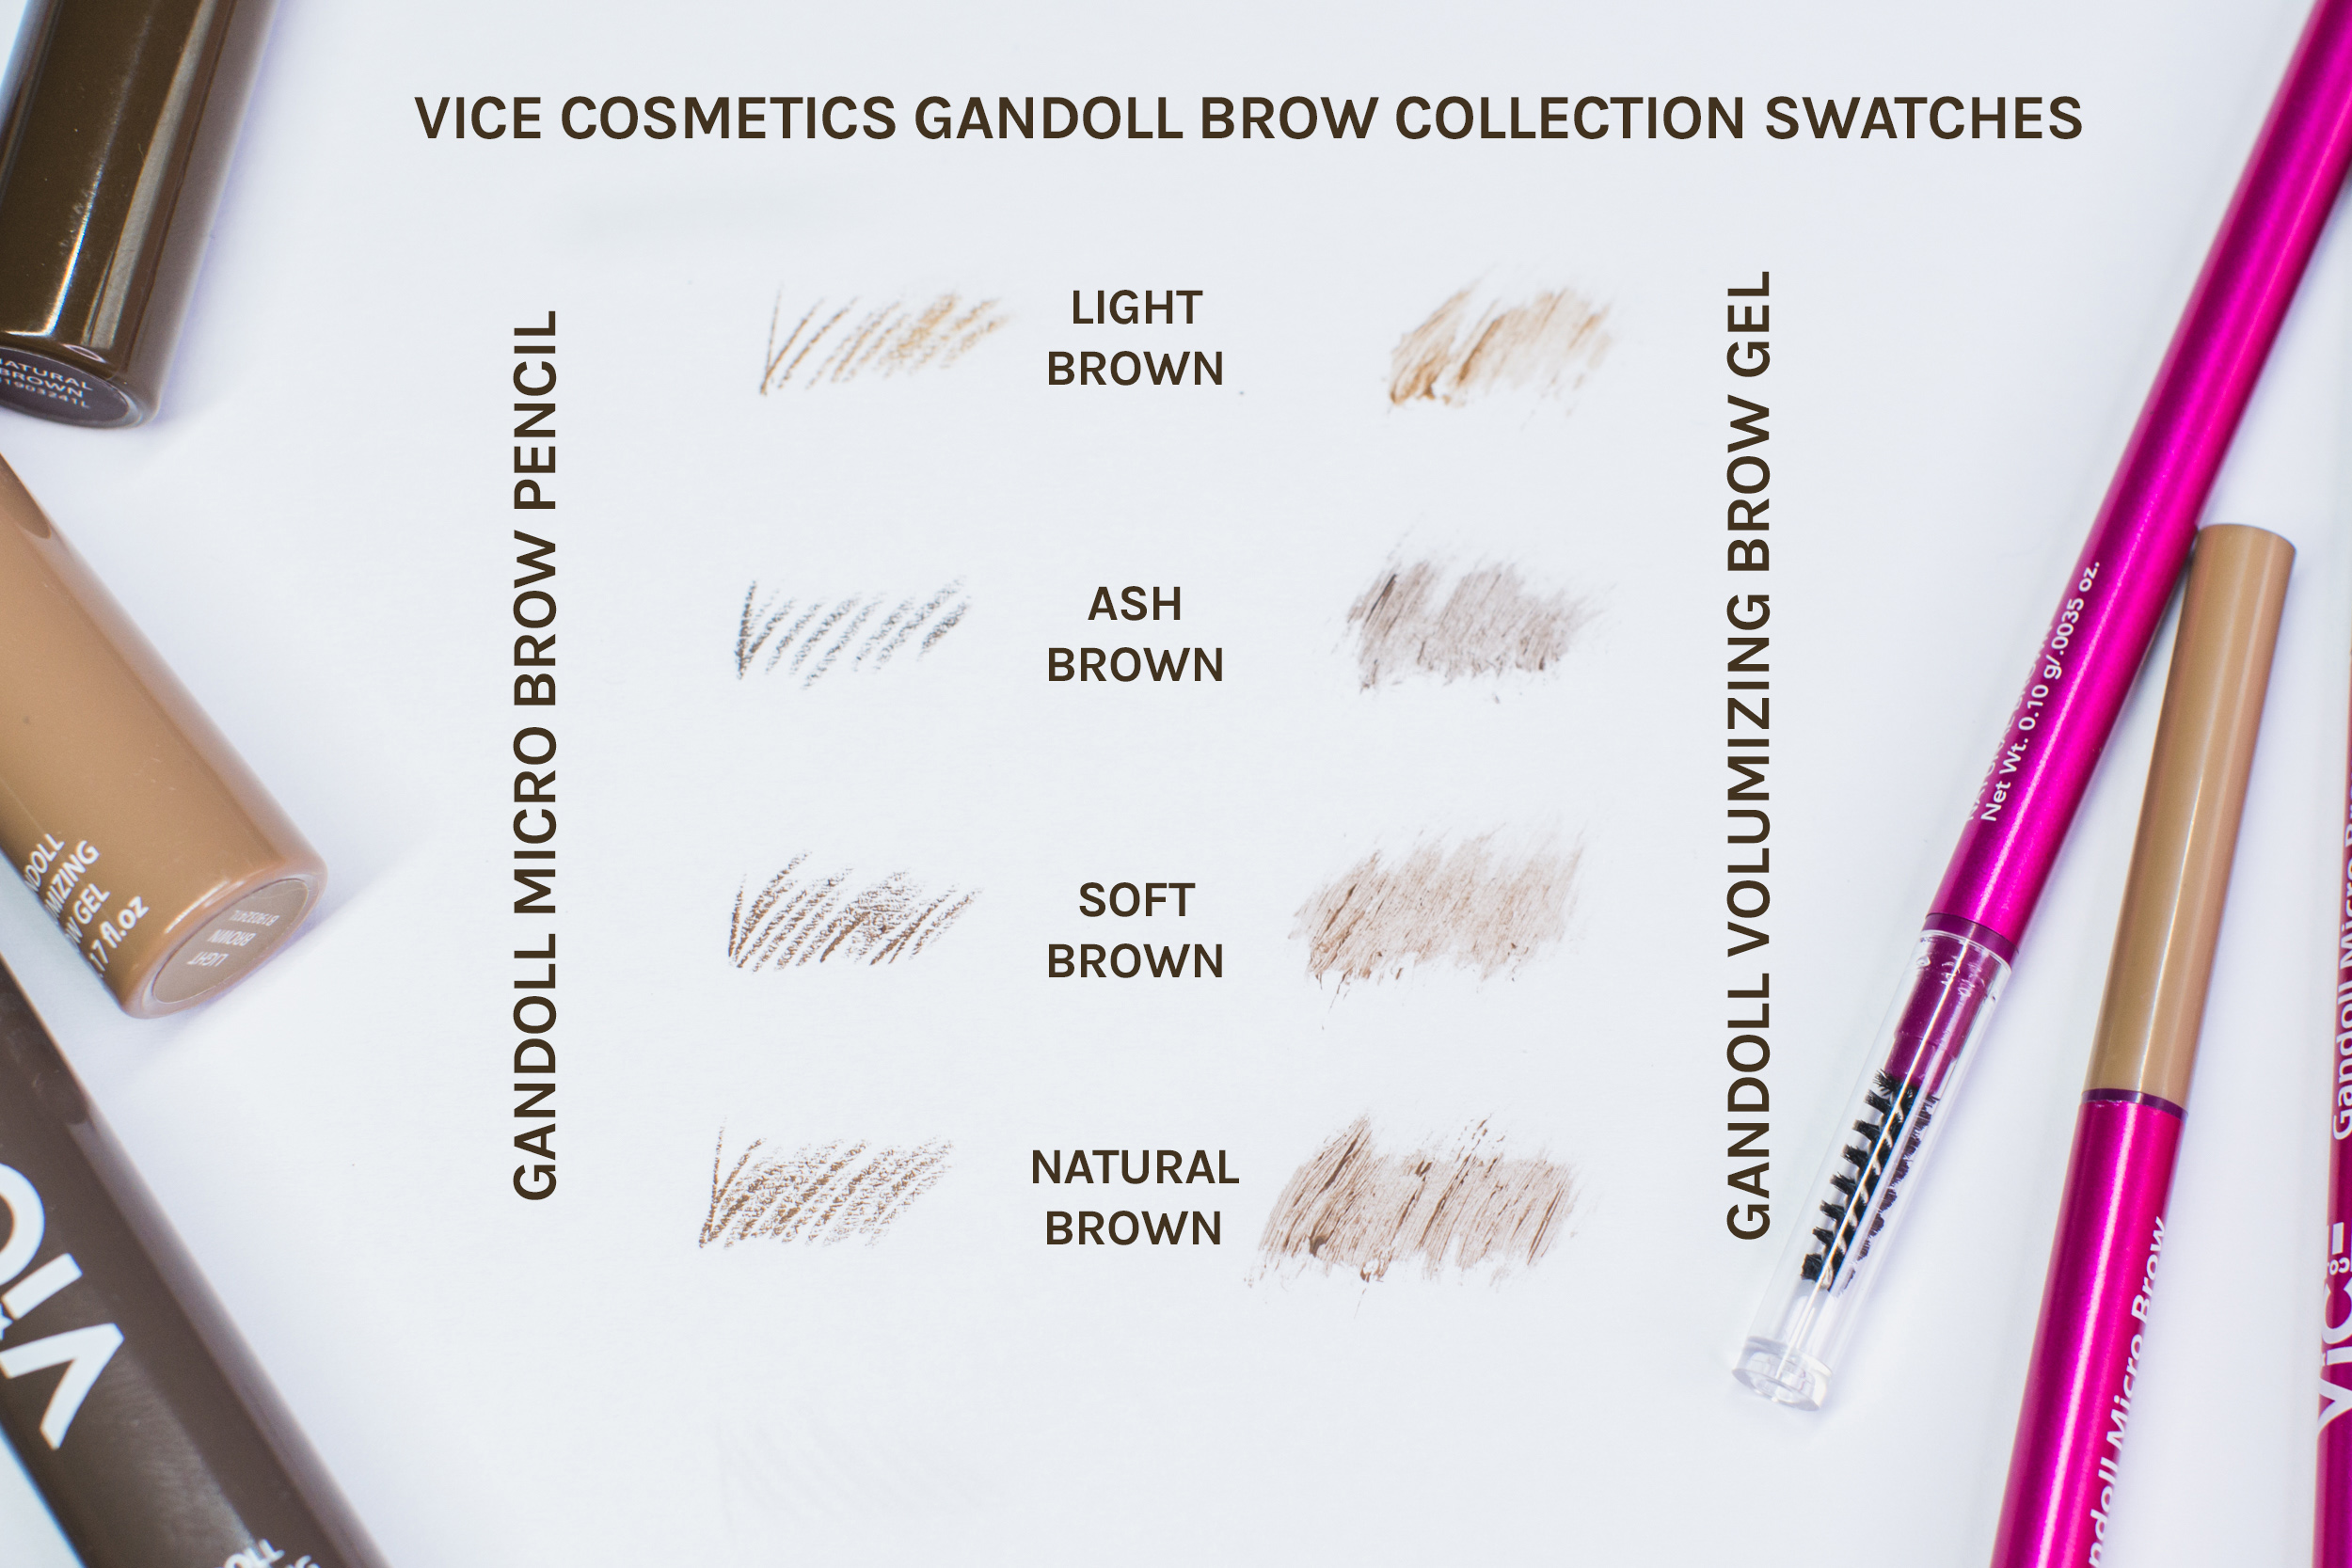 SWATCHES_vice-cosmetics_gandoll-micro-brow_volumizing-browcara_review-philippines_2019-12.jpg